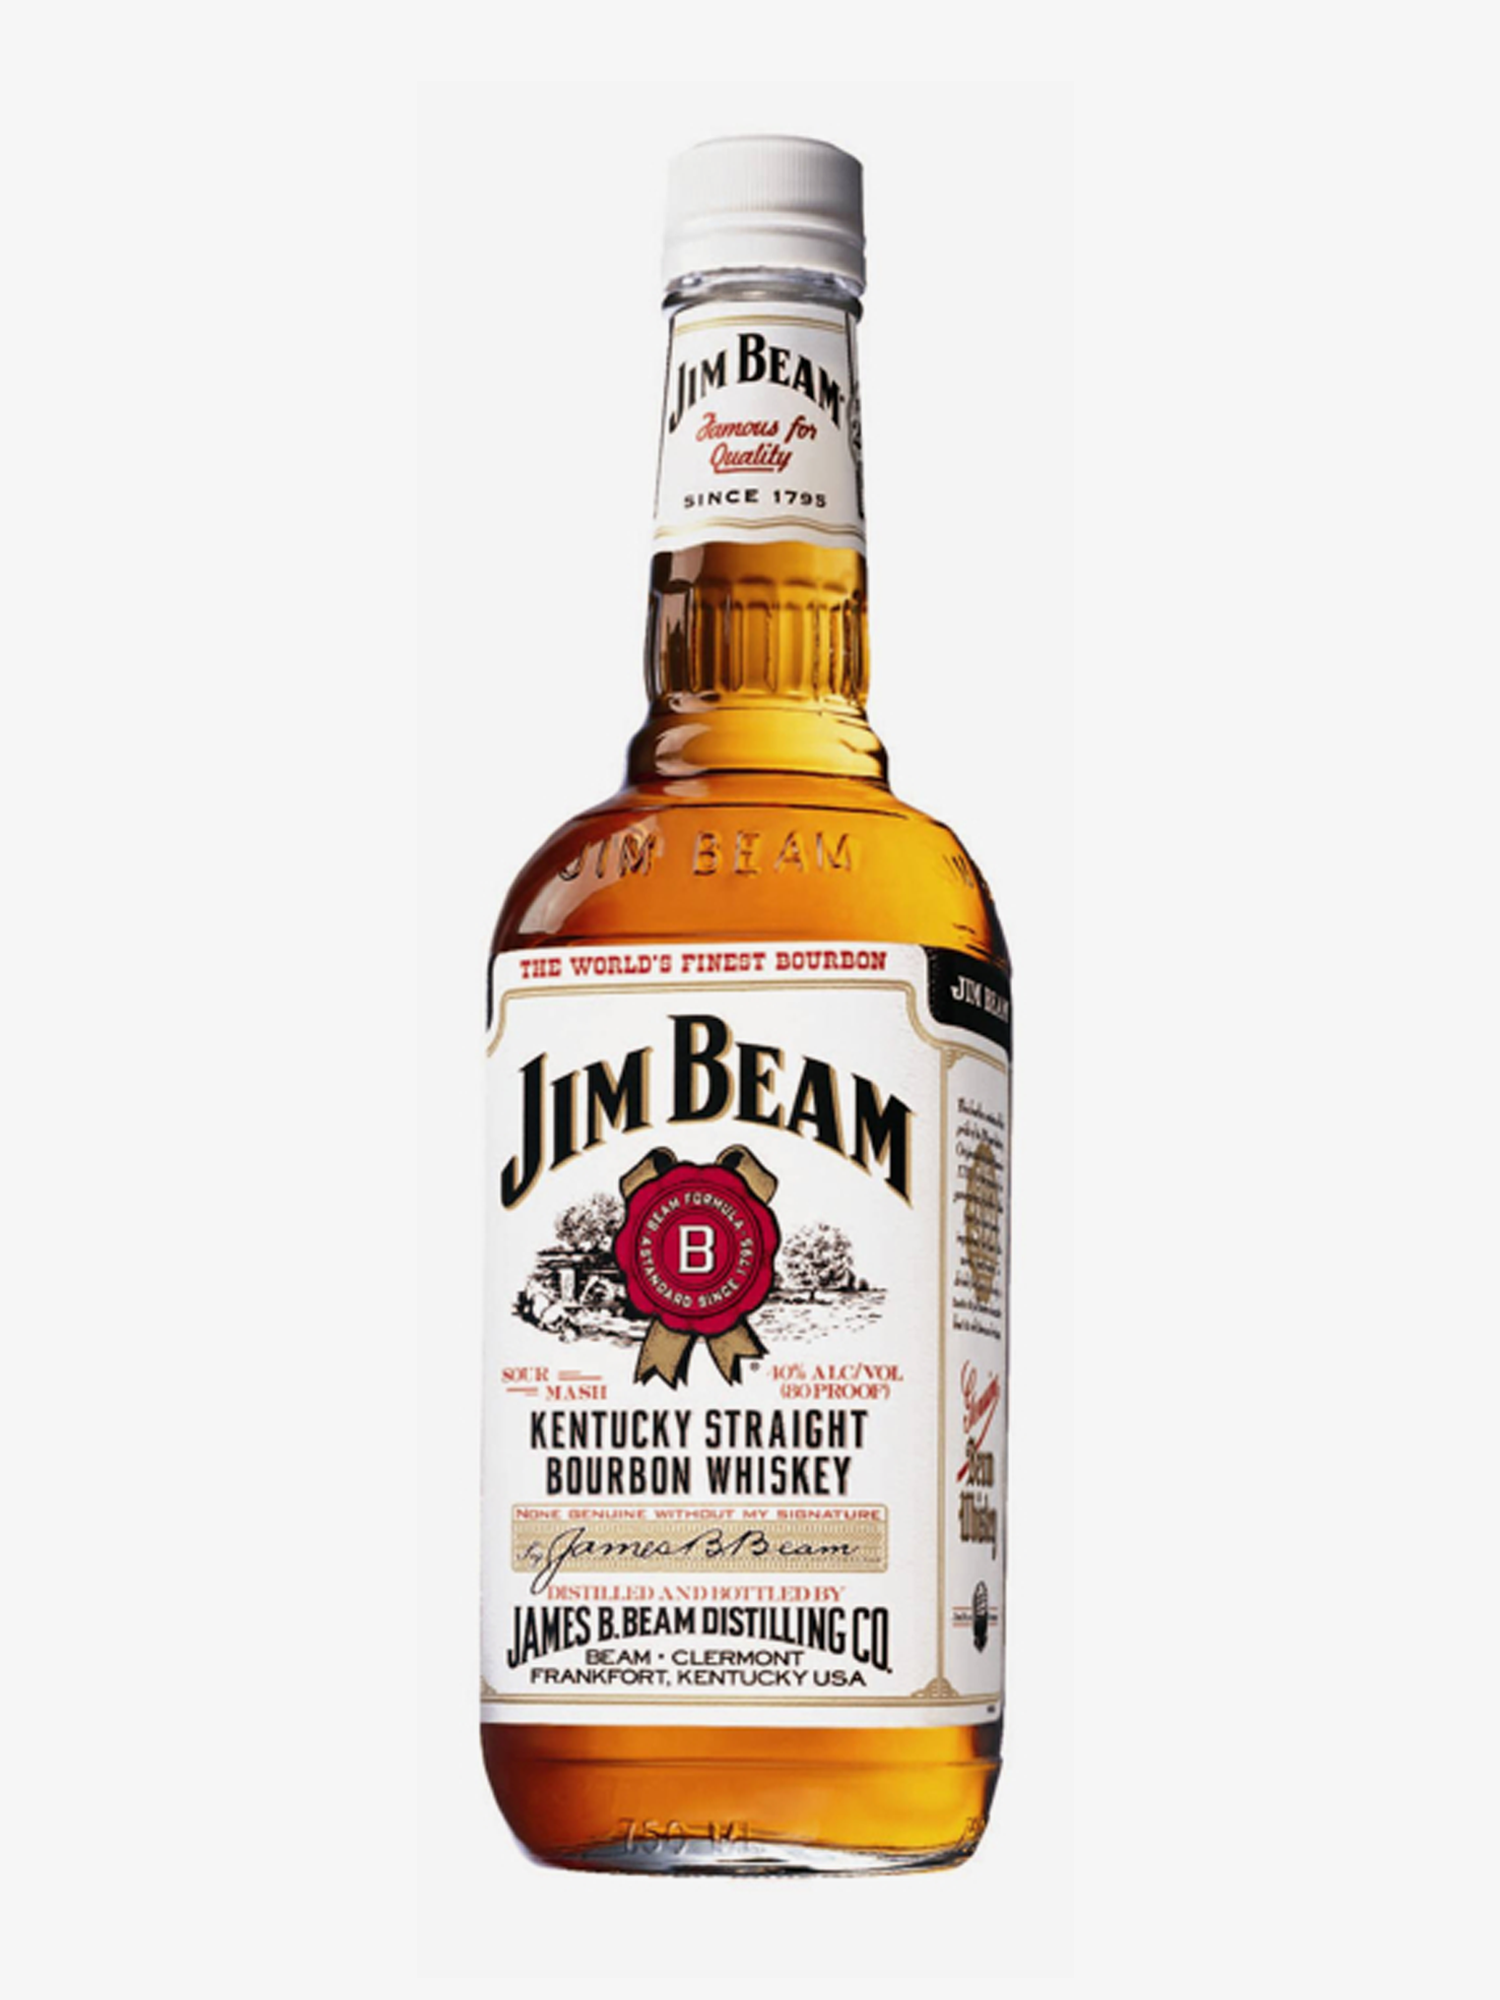 JIM BEAM 4 YEARS 40%